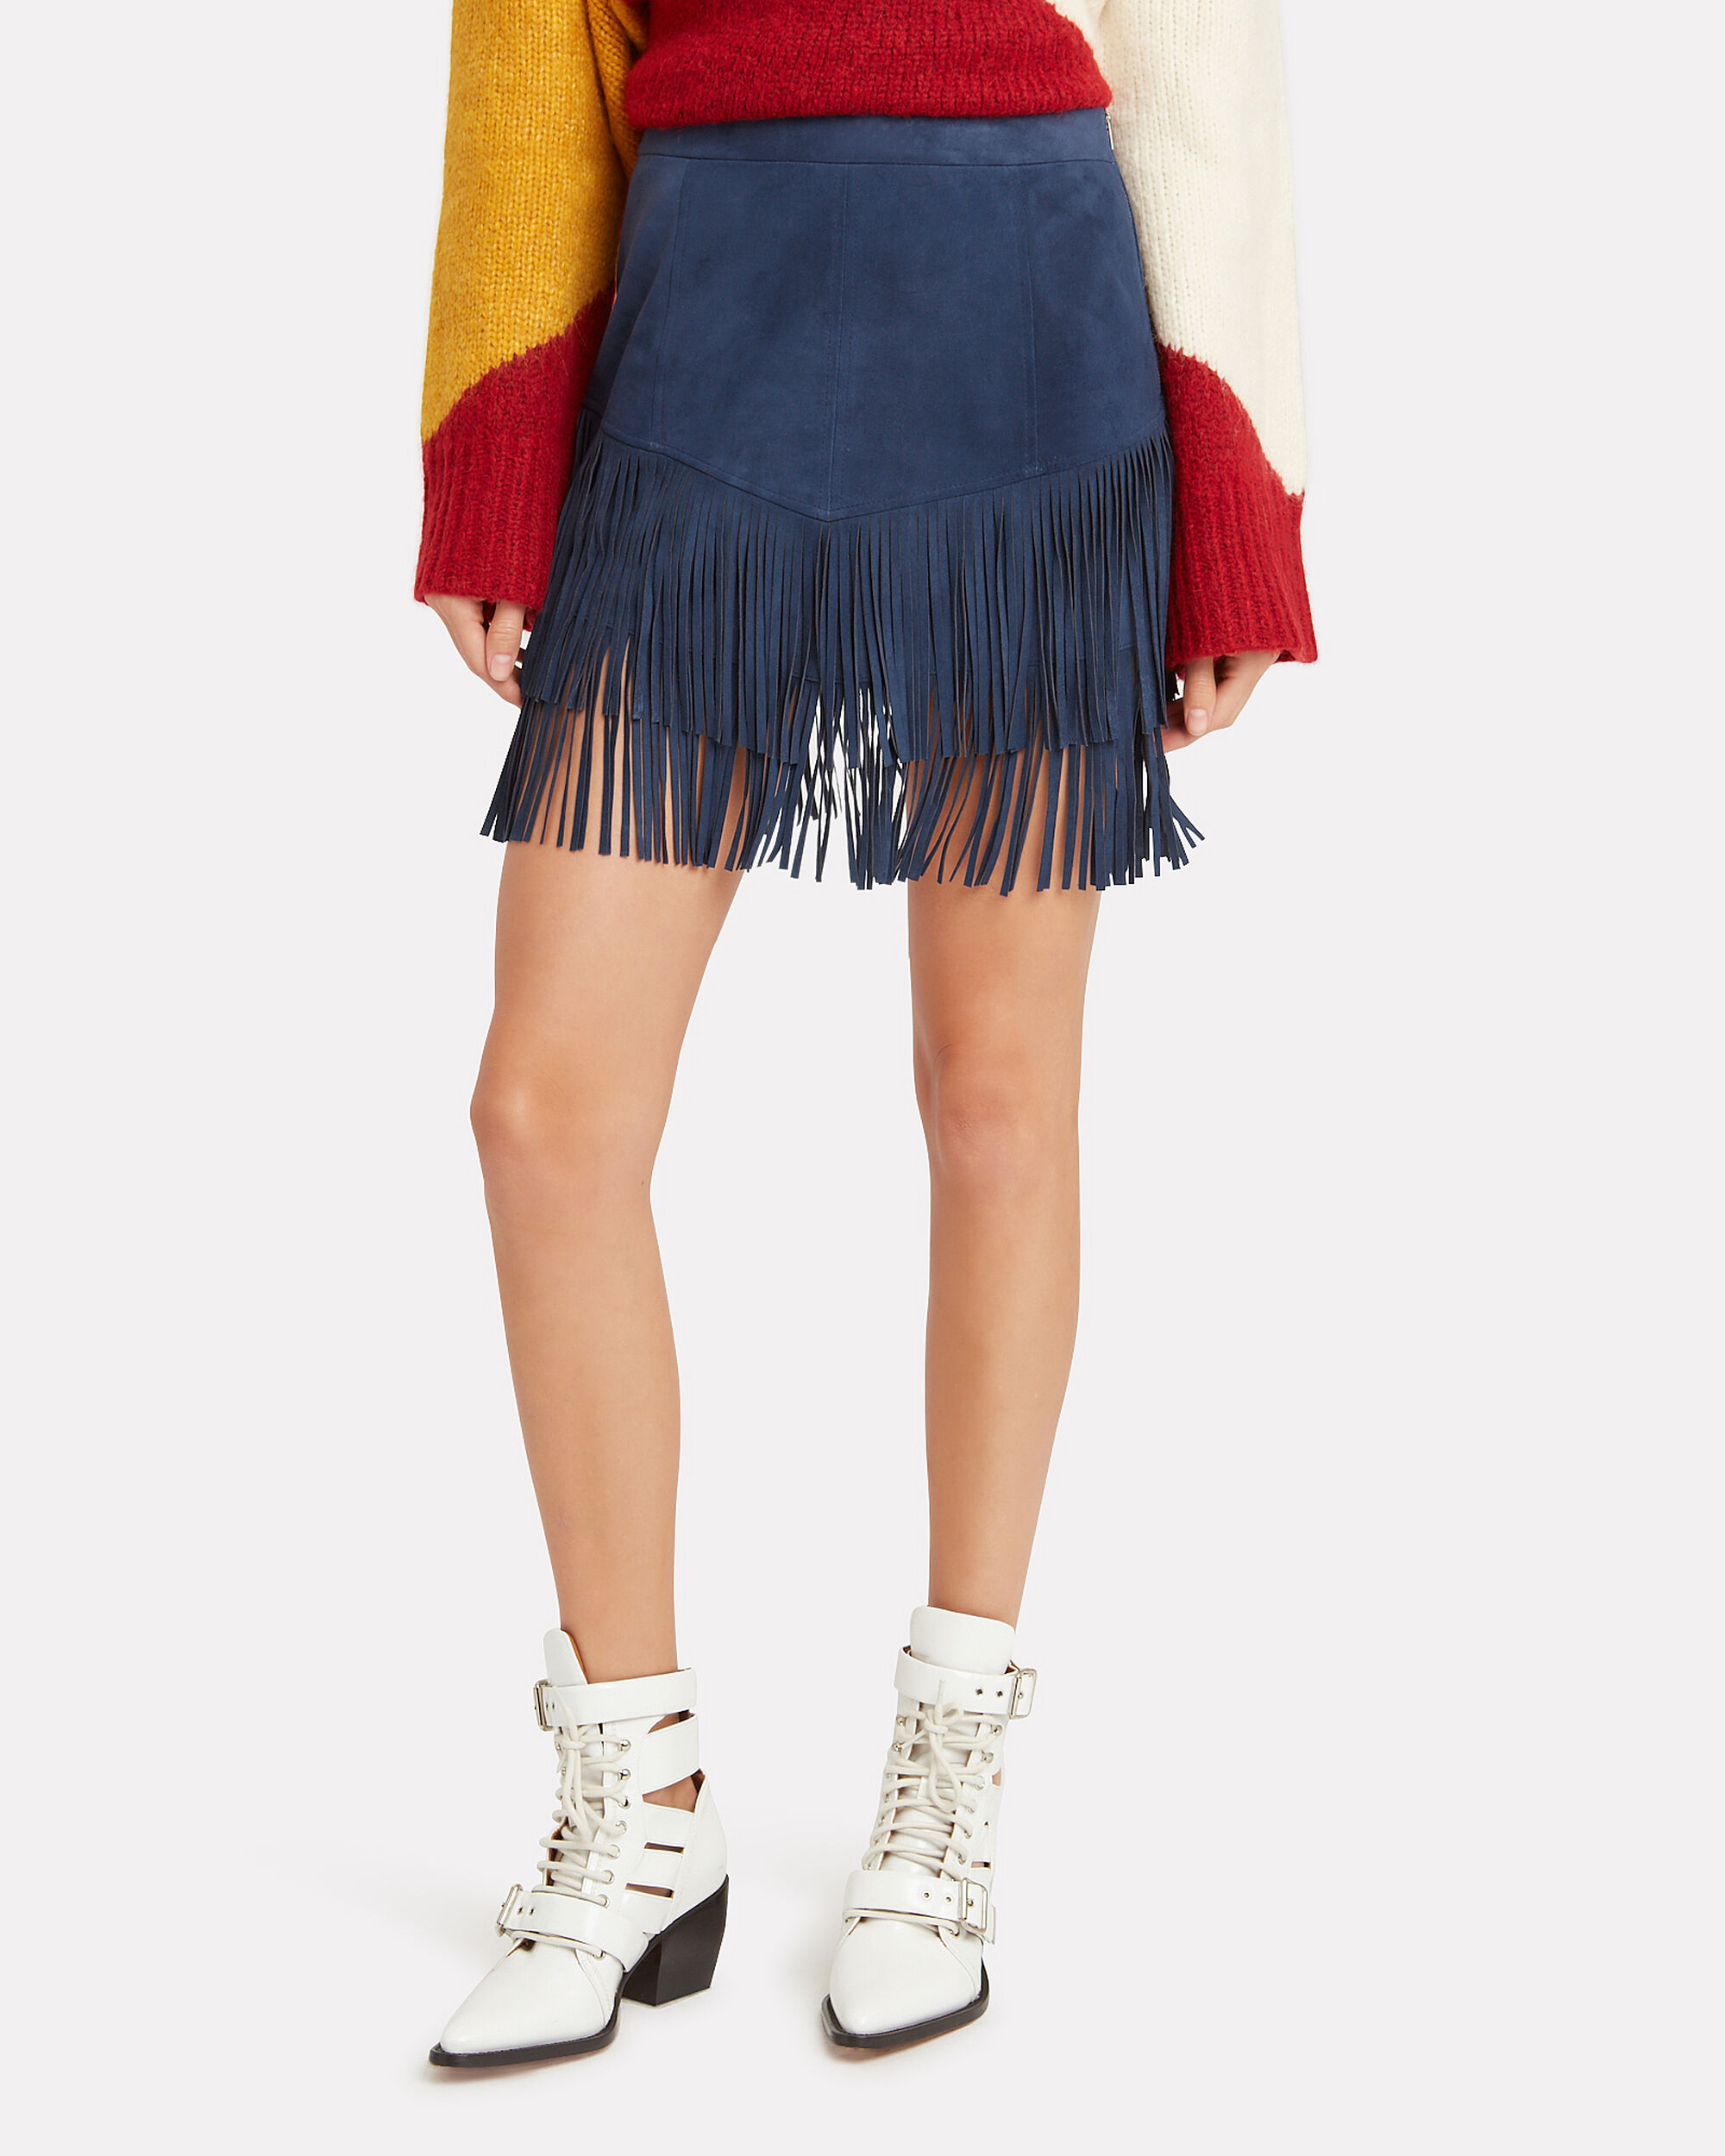 Maris Fringe Suede Skirt, BLUE-DRK, hi-res